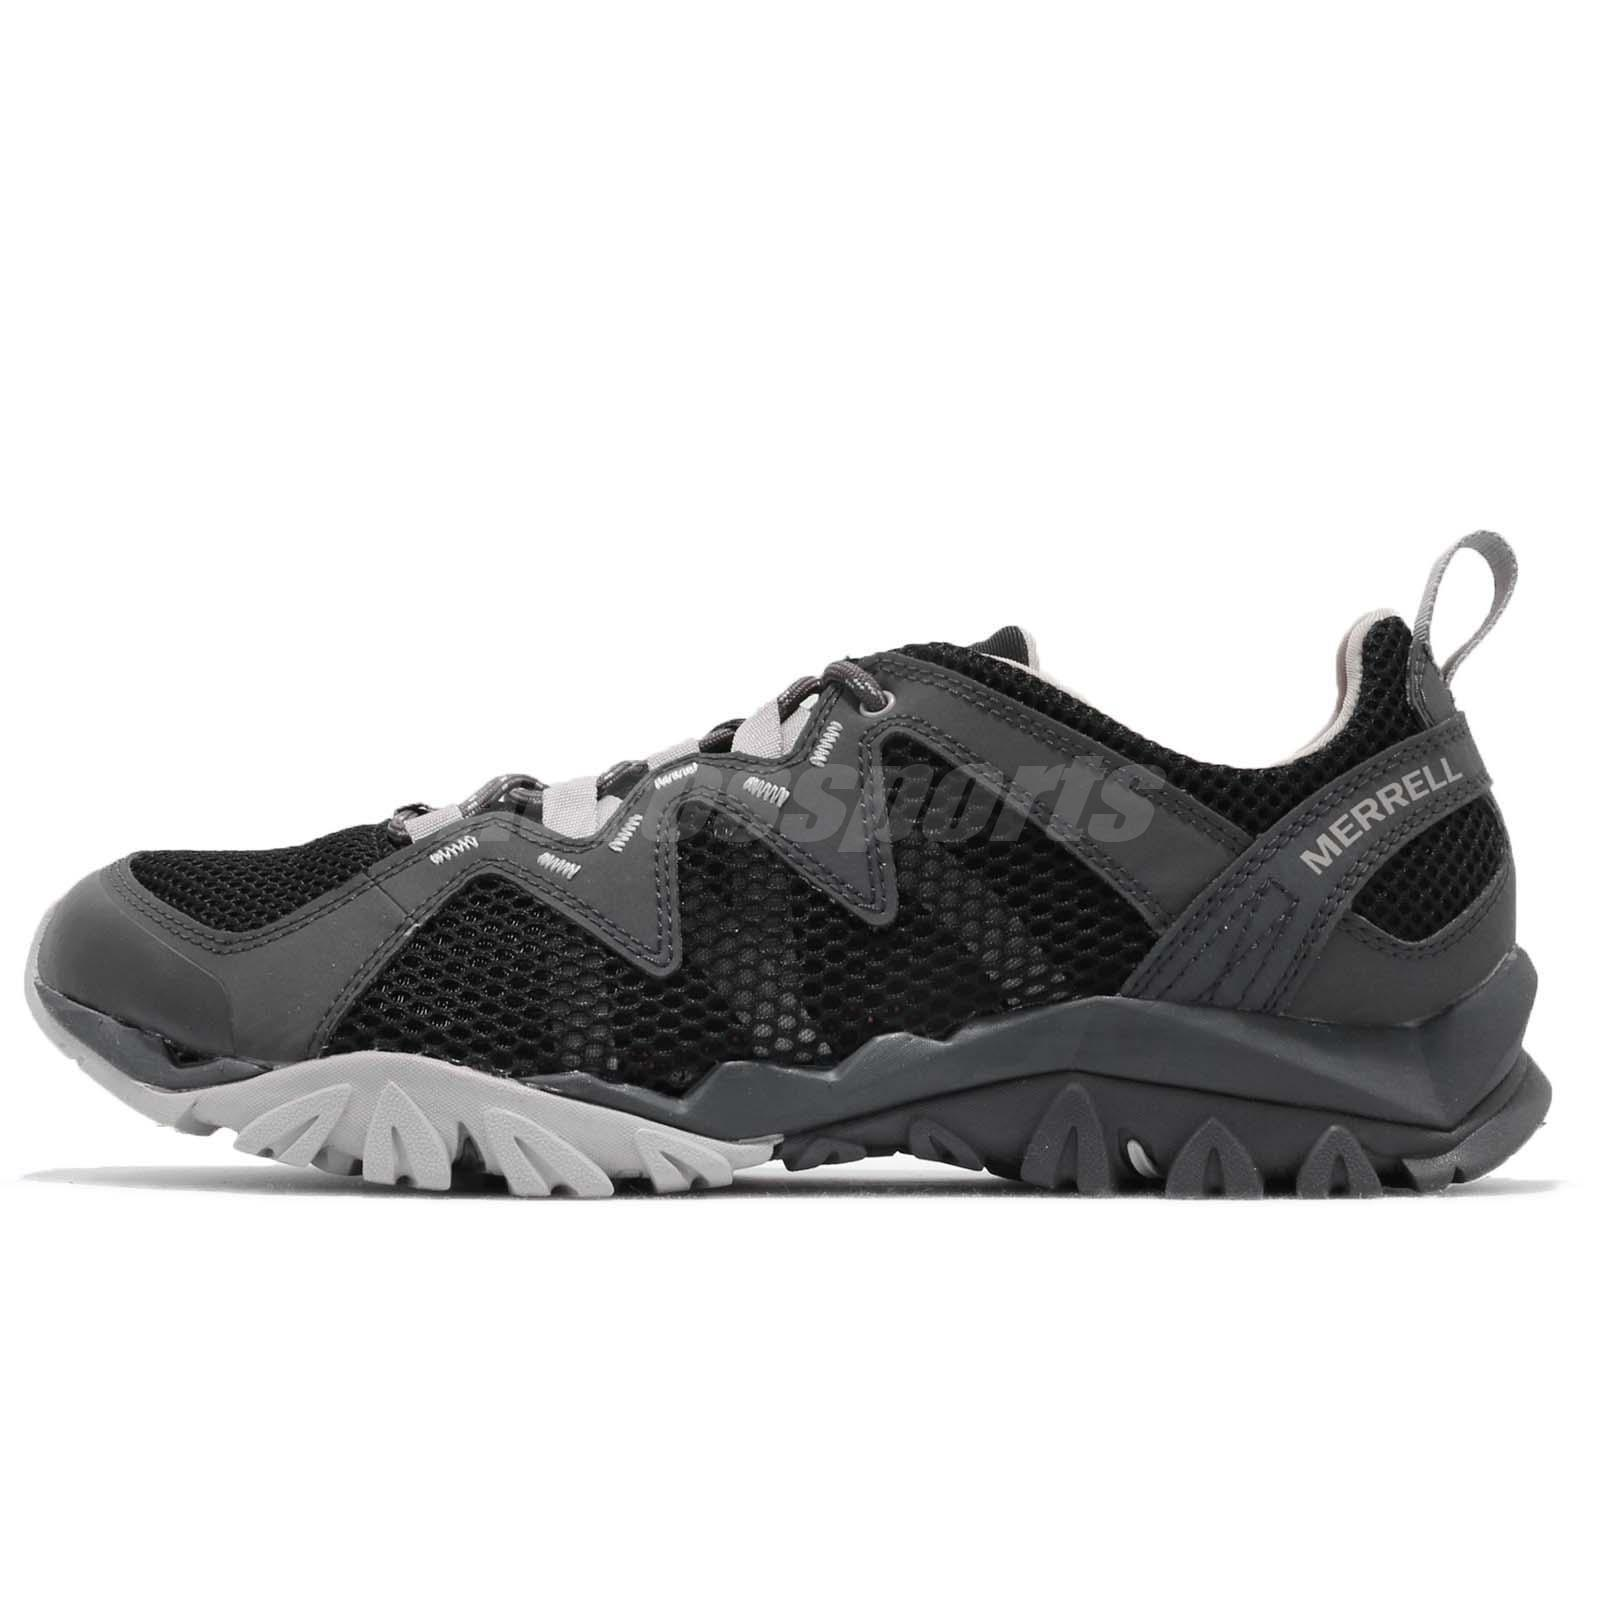 new high save off save off Details about Merrell Tetrex Rapid Crest Black Grey Men Outdoors Hiking  Water Shoes J12853